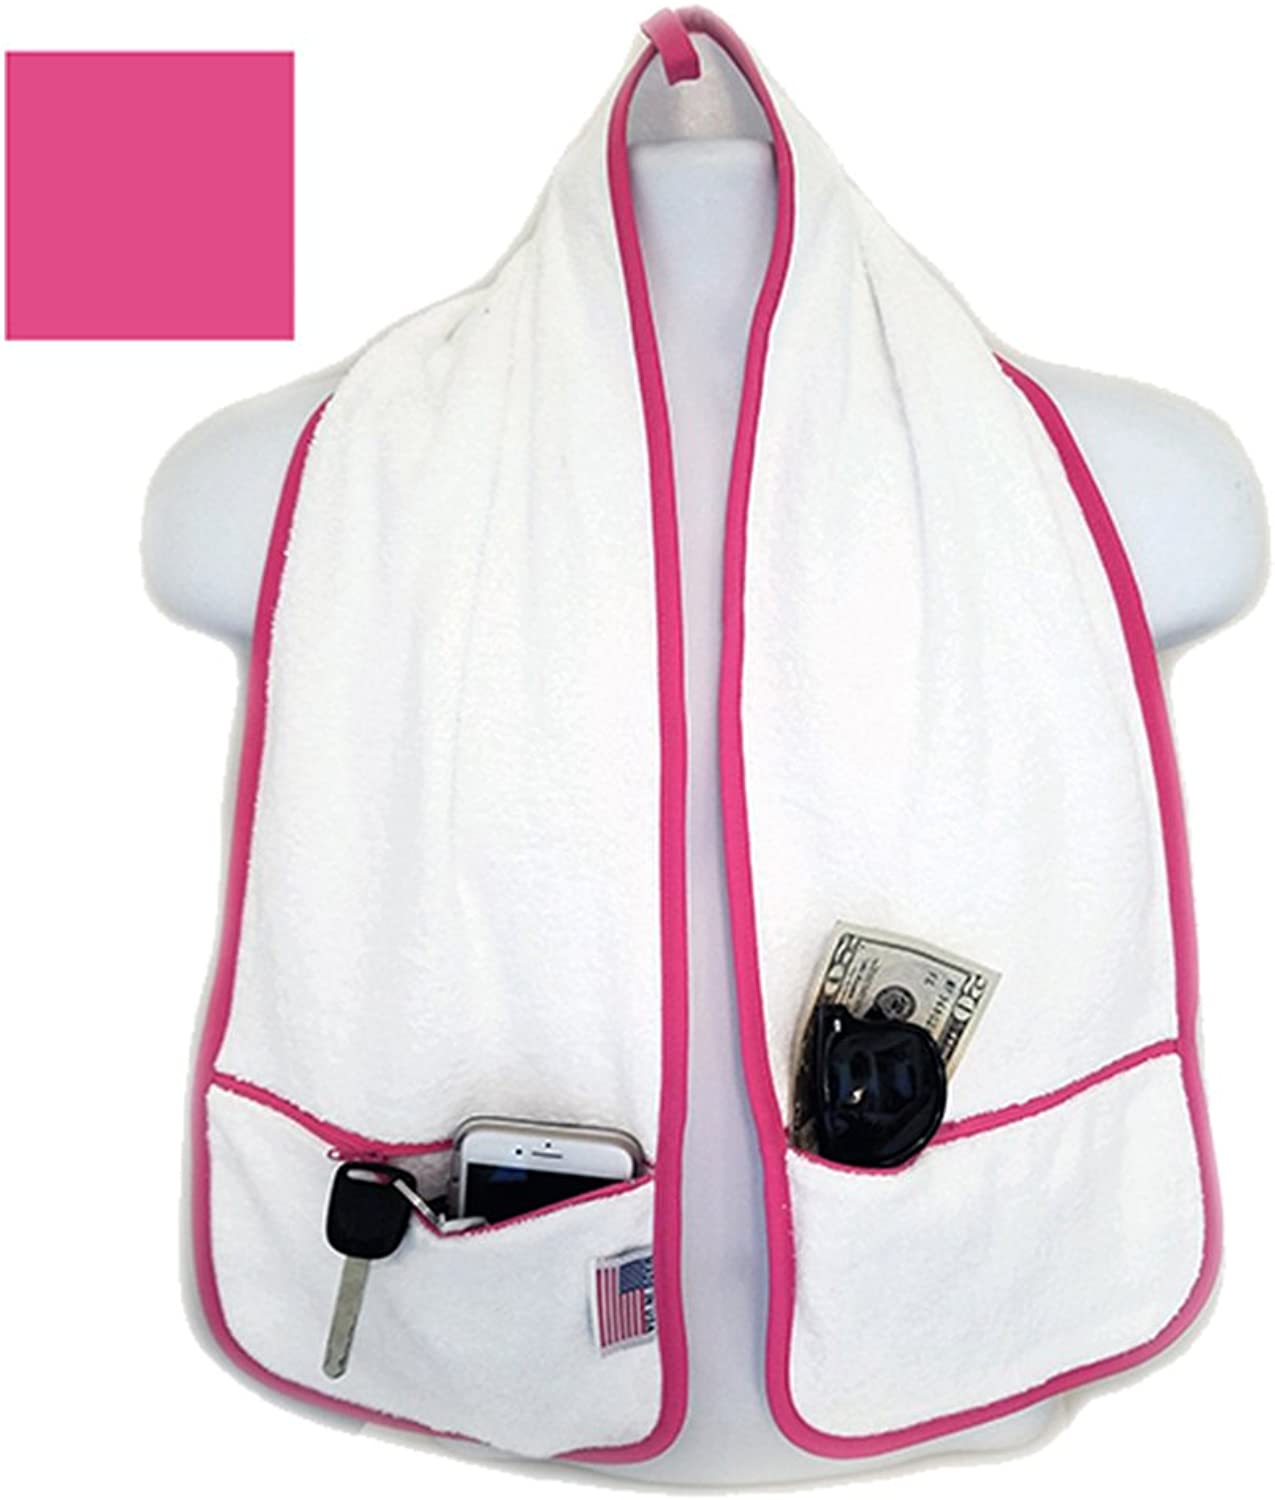 R J Hall Sports Towel  2 Zipper Pockets Holds Belongings Safe While You Exercise, Workout, Yoga Class, Fitness Training at The Gym or a Walk on The Beach 100% Cotton Loops Super Soft and Absorbent